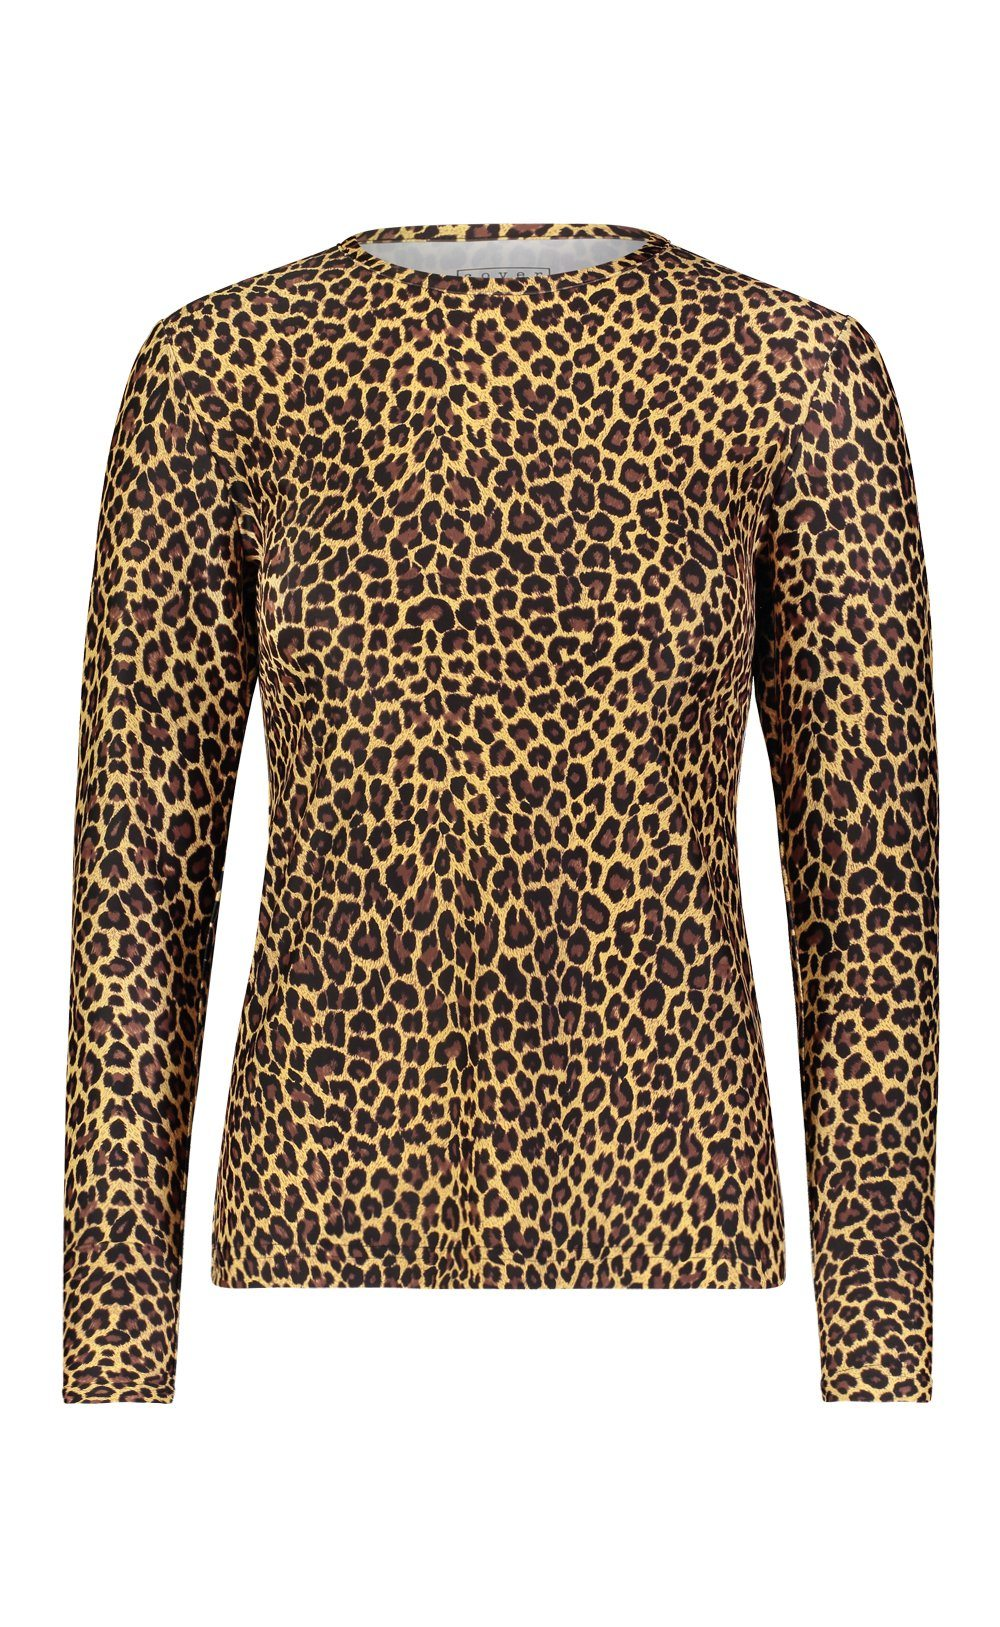 Long-Sleeved Swim T - Leopard